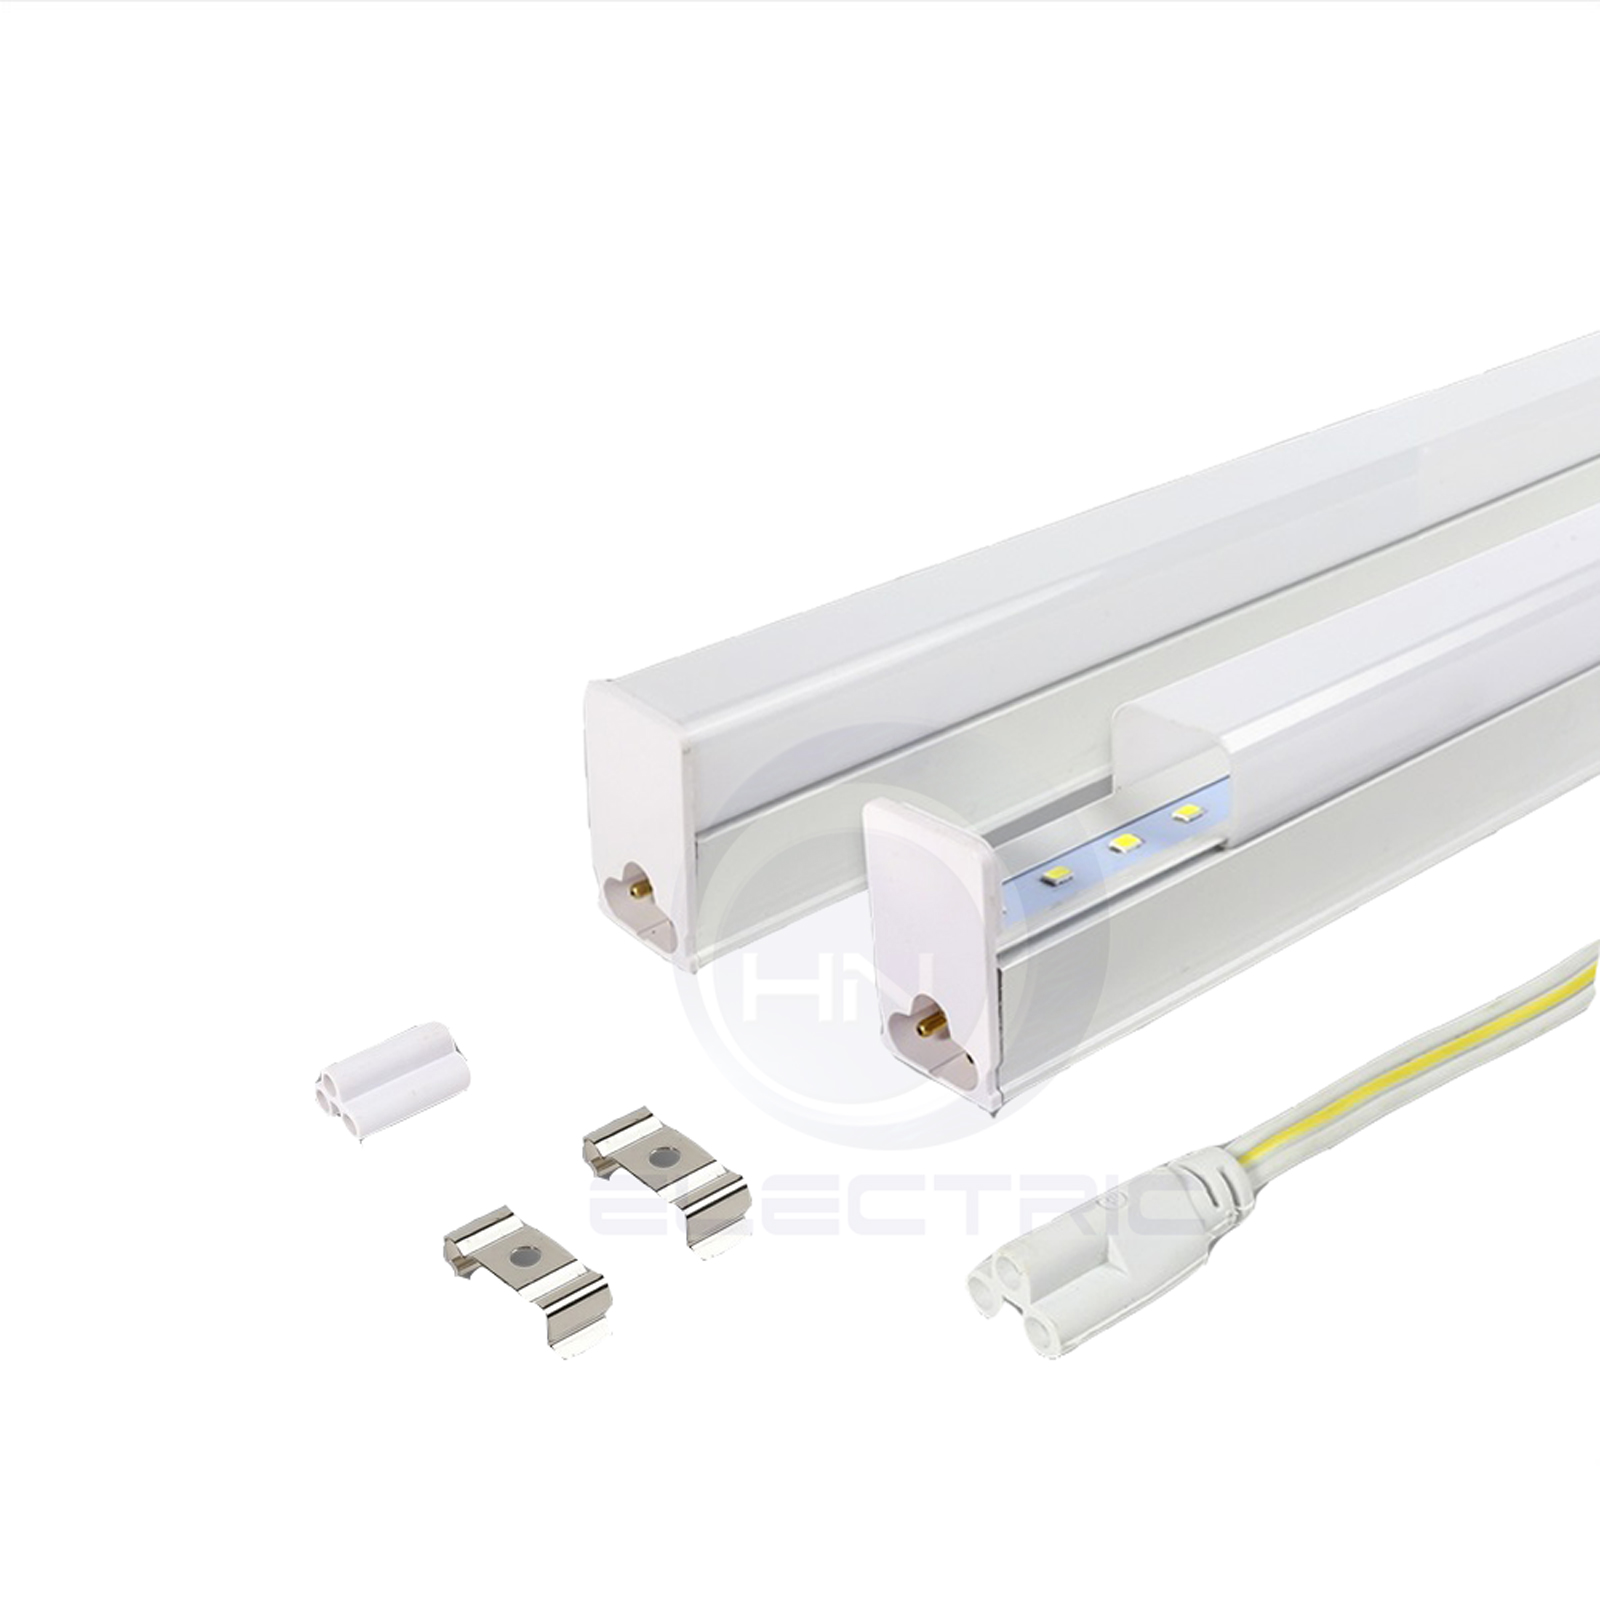 Đèn Tuýt T5 Led 0.6M 8W VT5-8-60-V/TT/T Kingled